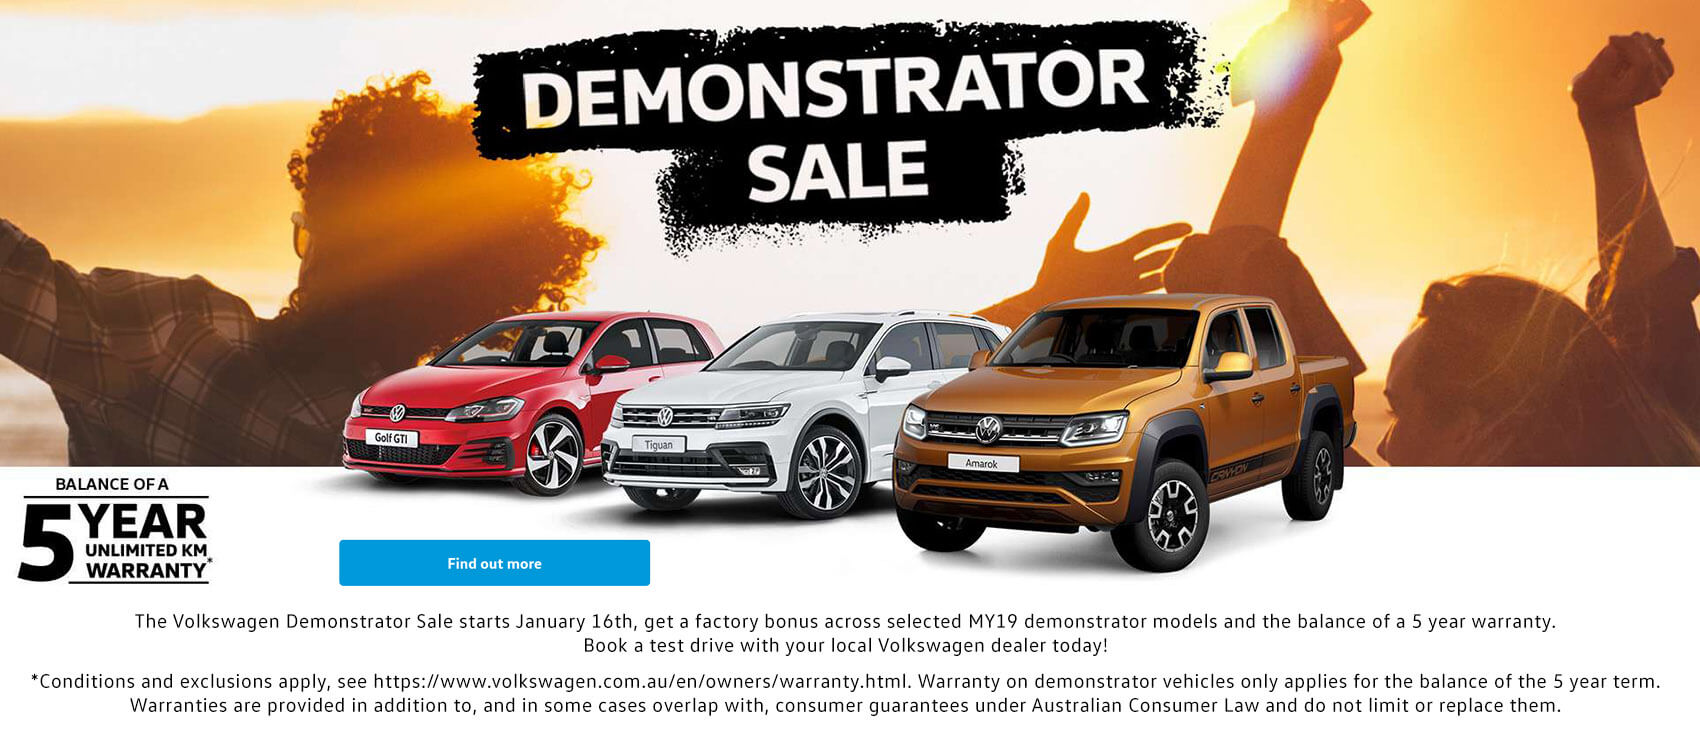 The Volkswagen Demonstrator Sale starts January 16th, get a factory bonus across selected MY19 demonstrator models and the balance of a 5 year warranty. Book a test drive with Geoff King Volkswagen